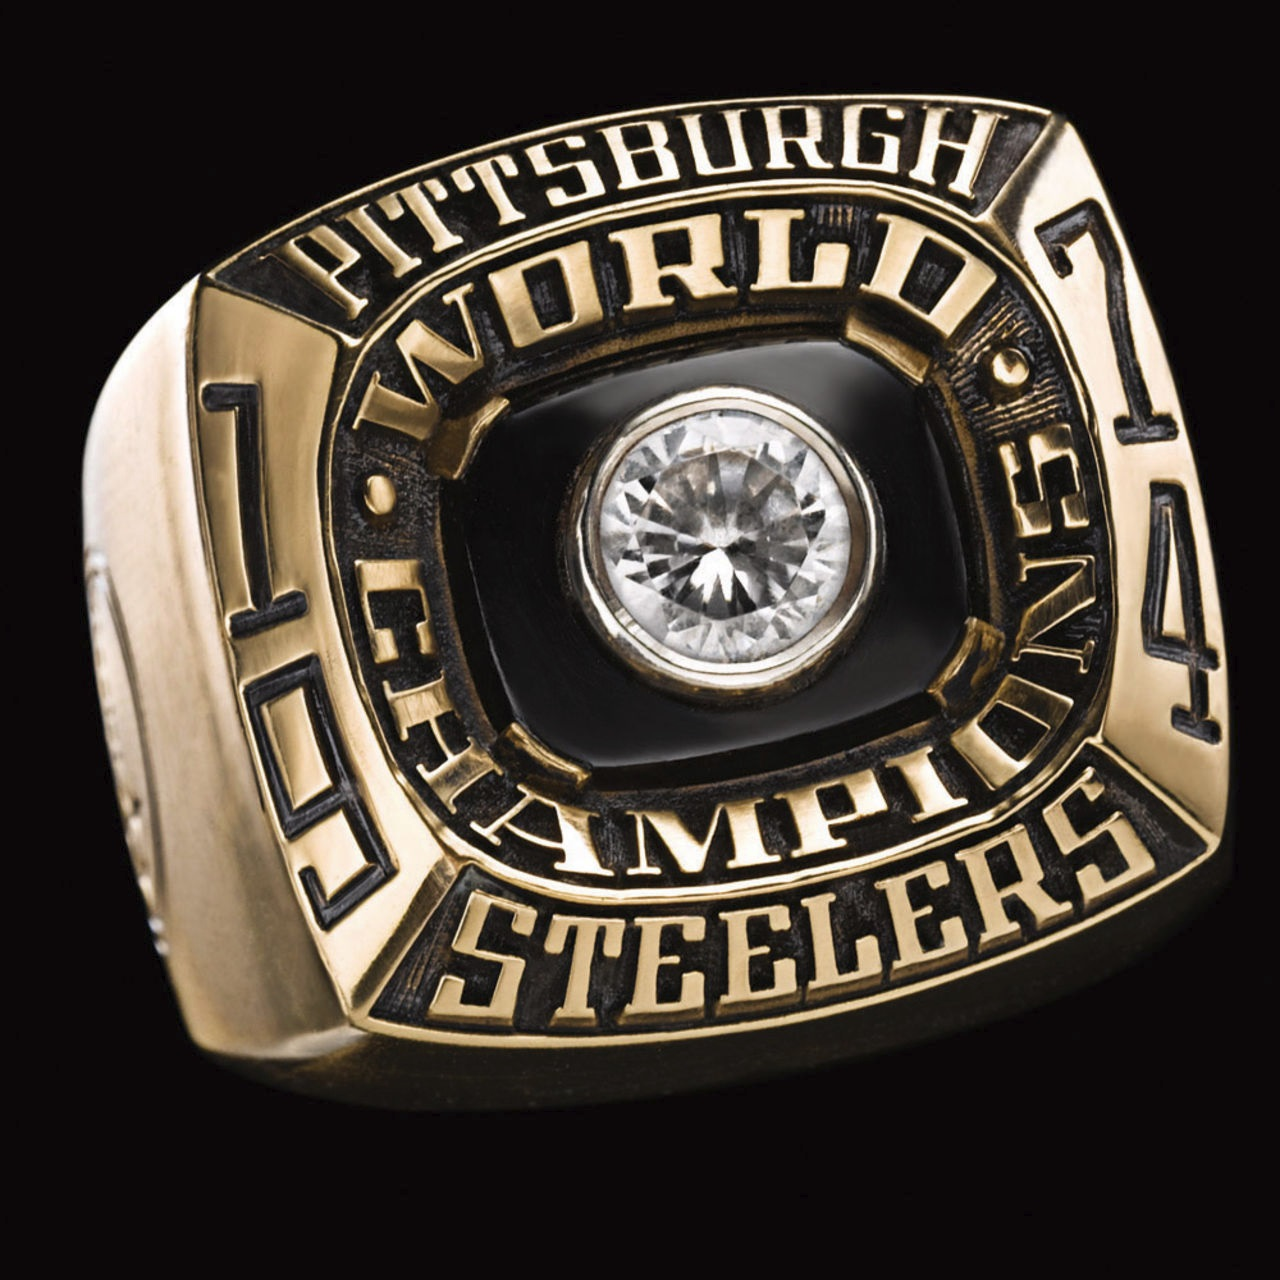 Pittsburgh Steelers 1975 champions ring